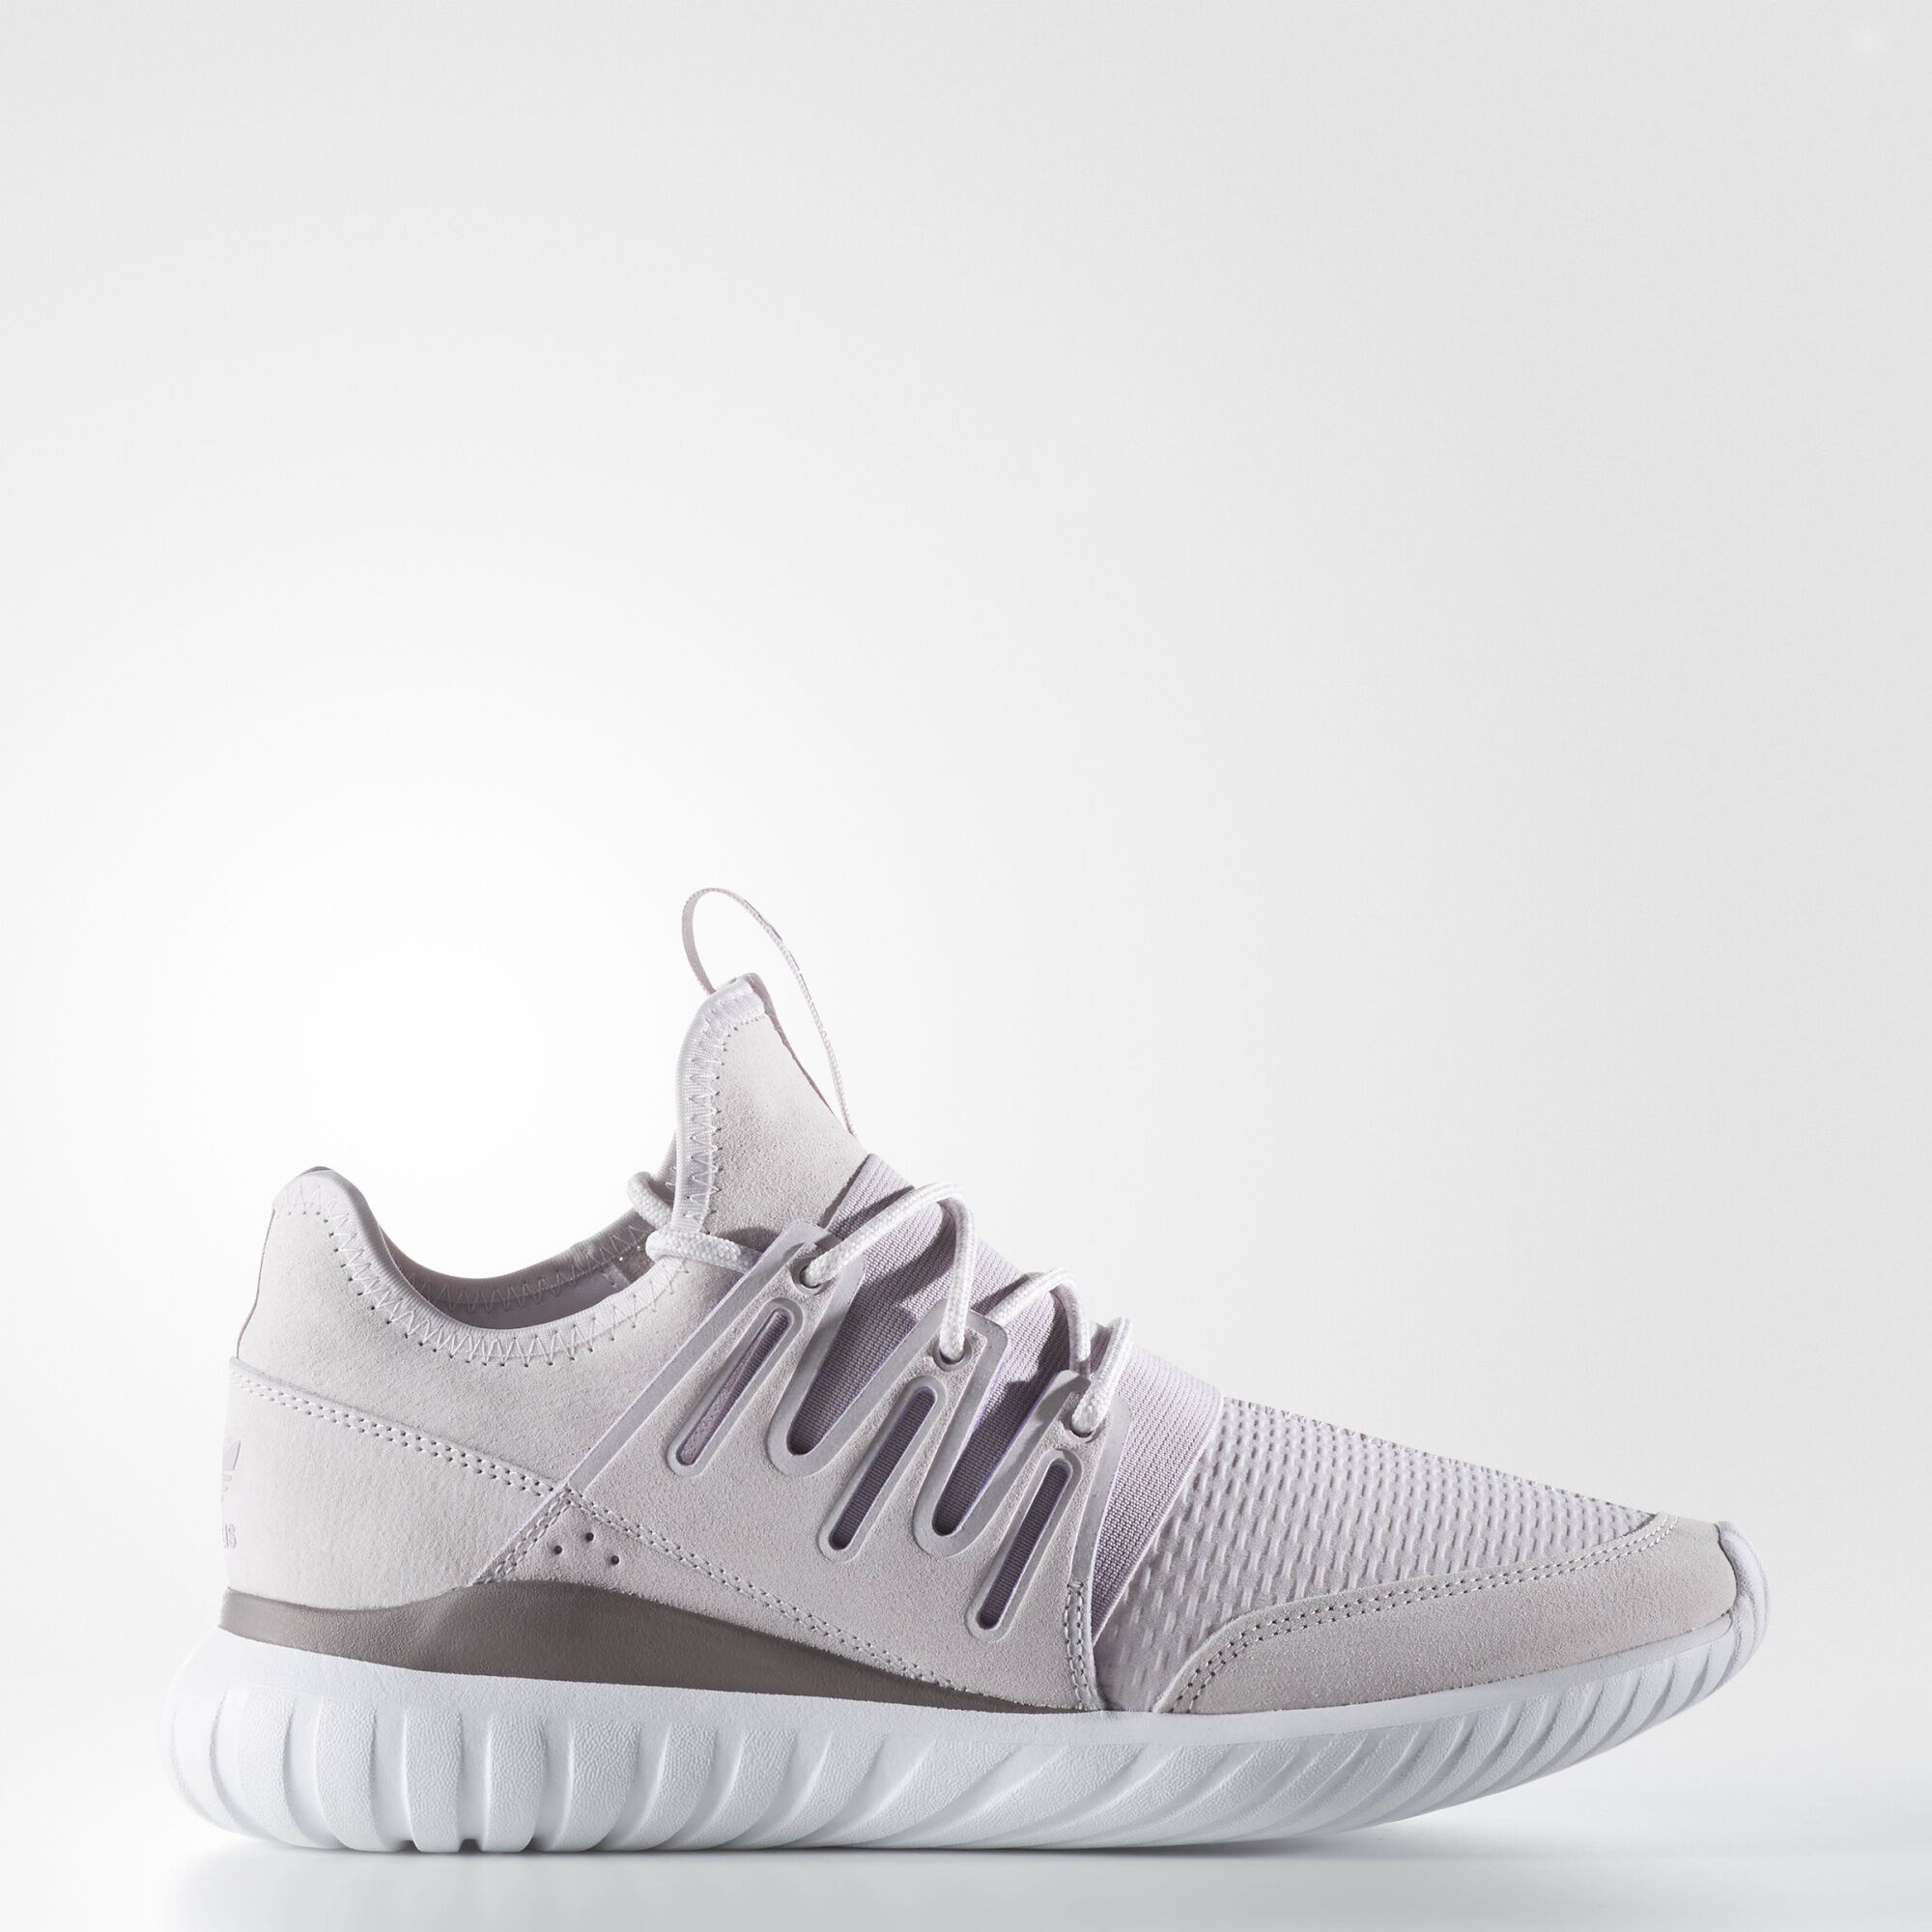 Adidas Tubular Defiant Primeknit Shoes adidas Philippines